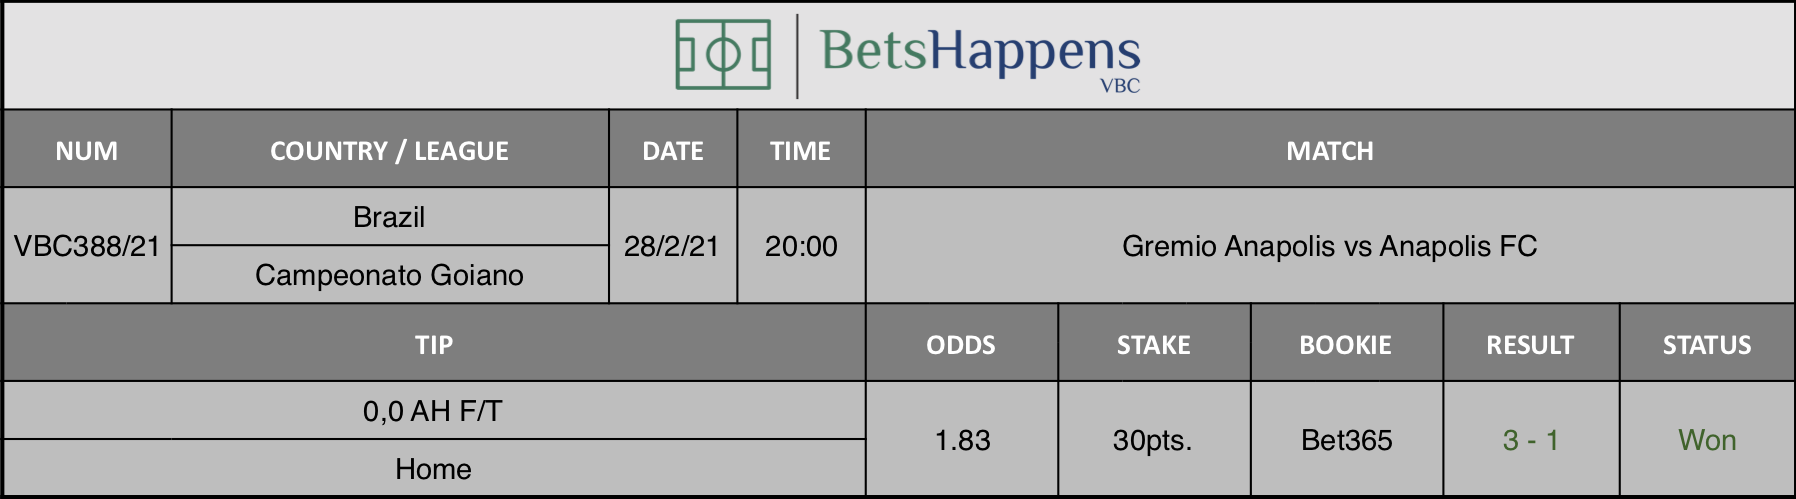 Results of our tip for the Gremio Anapolis vs Anapolis FC match where 0,0 AH F/T  Home is recommended.